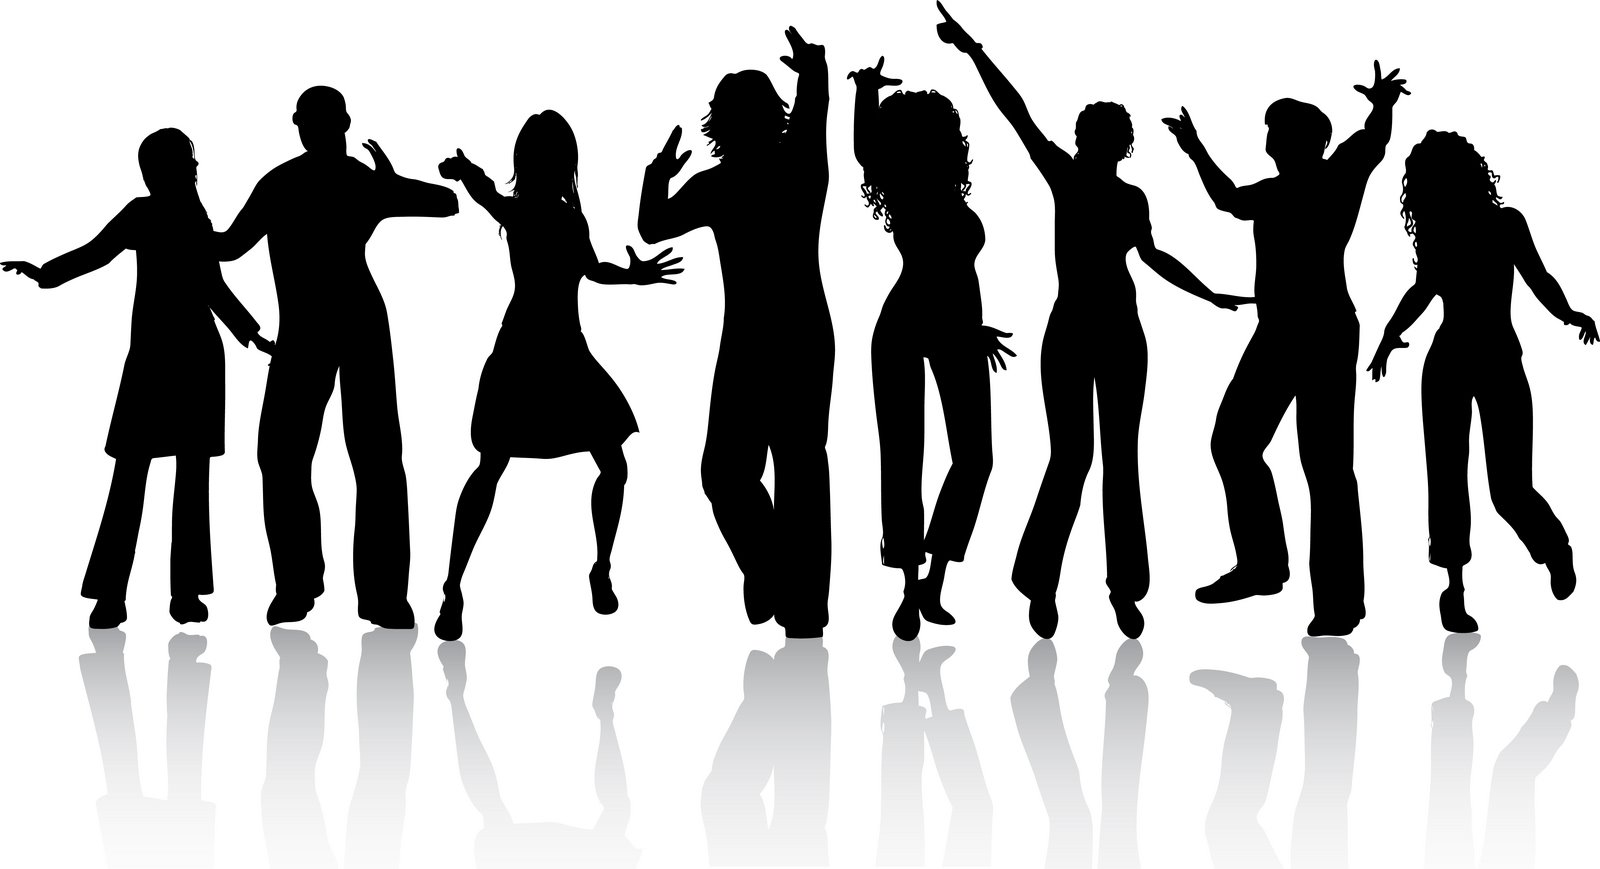 external image silhouette20dancing20people.jpg